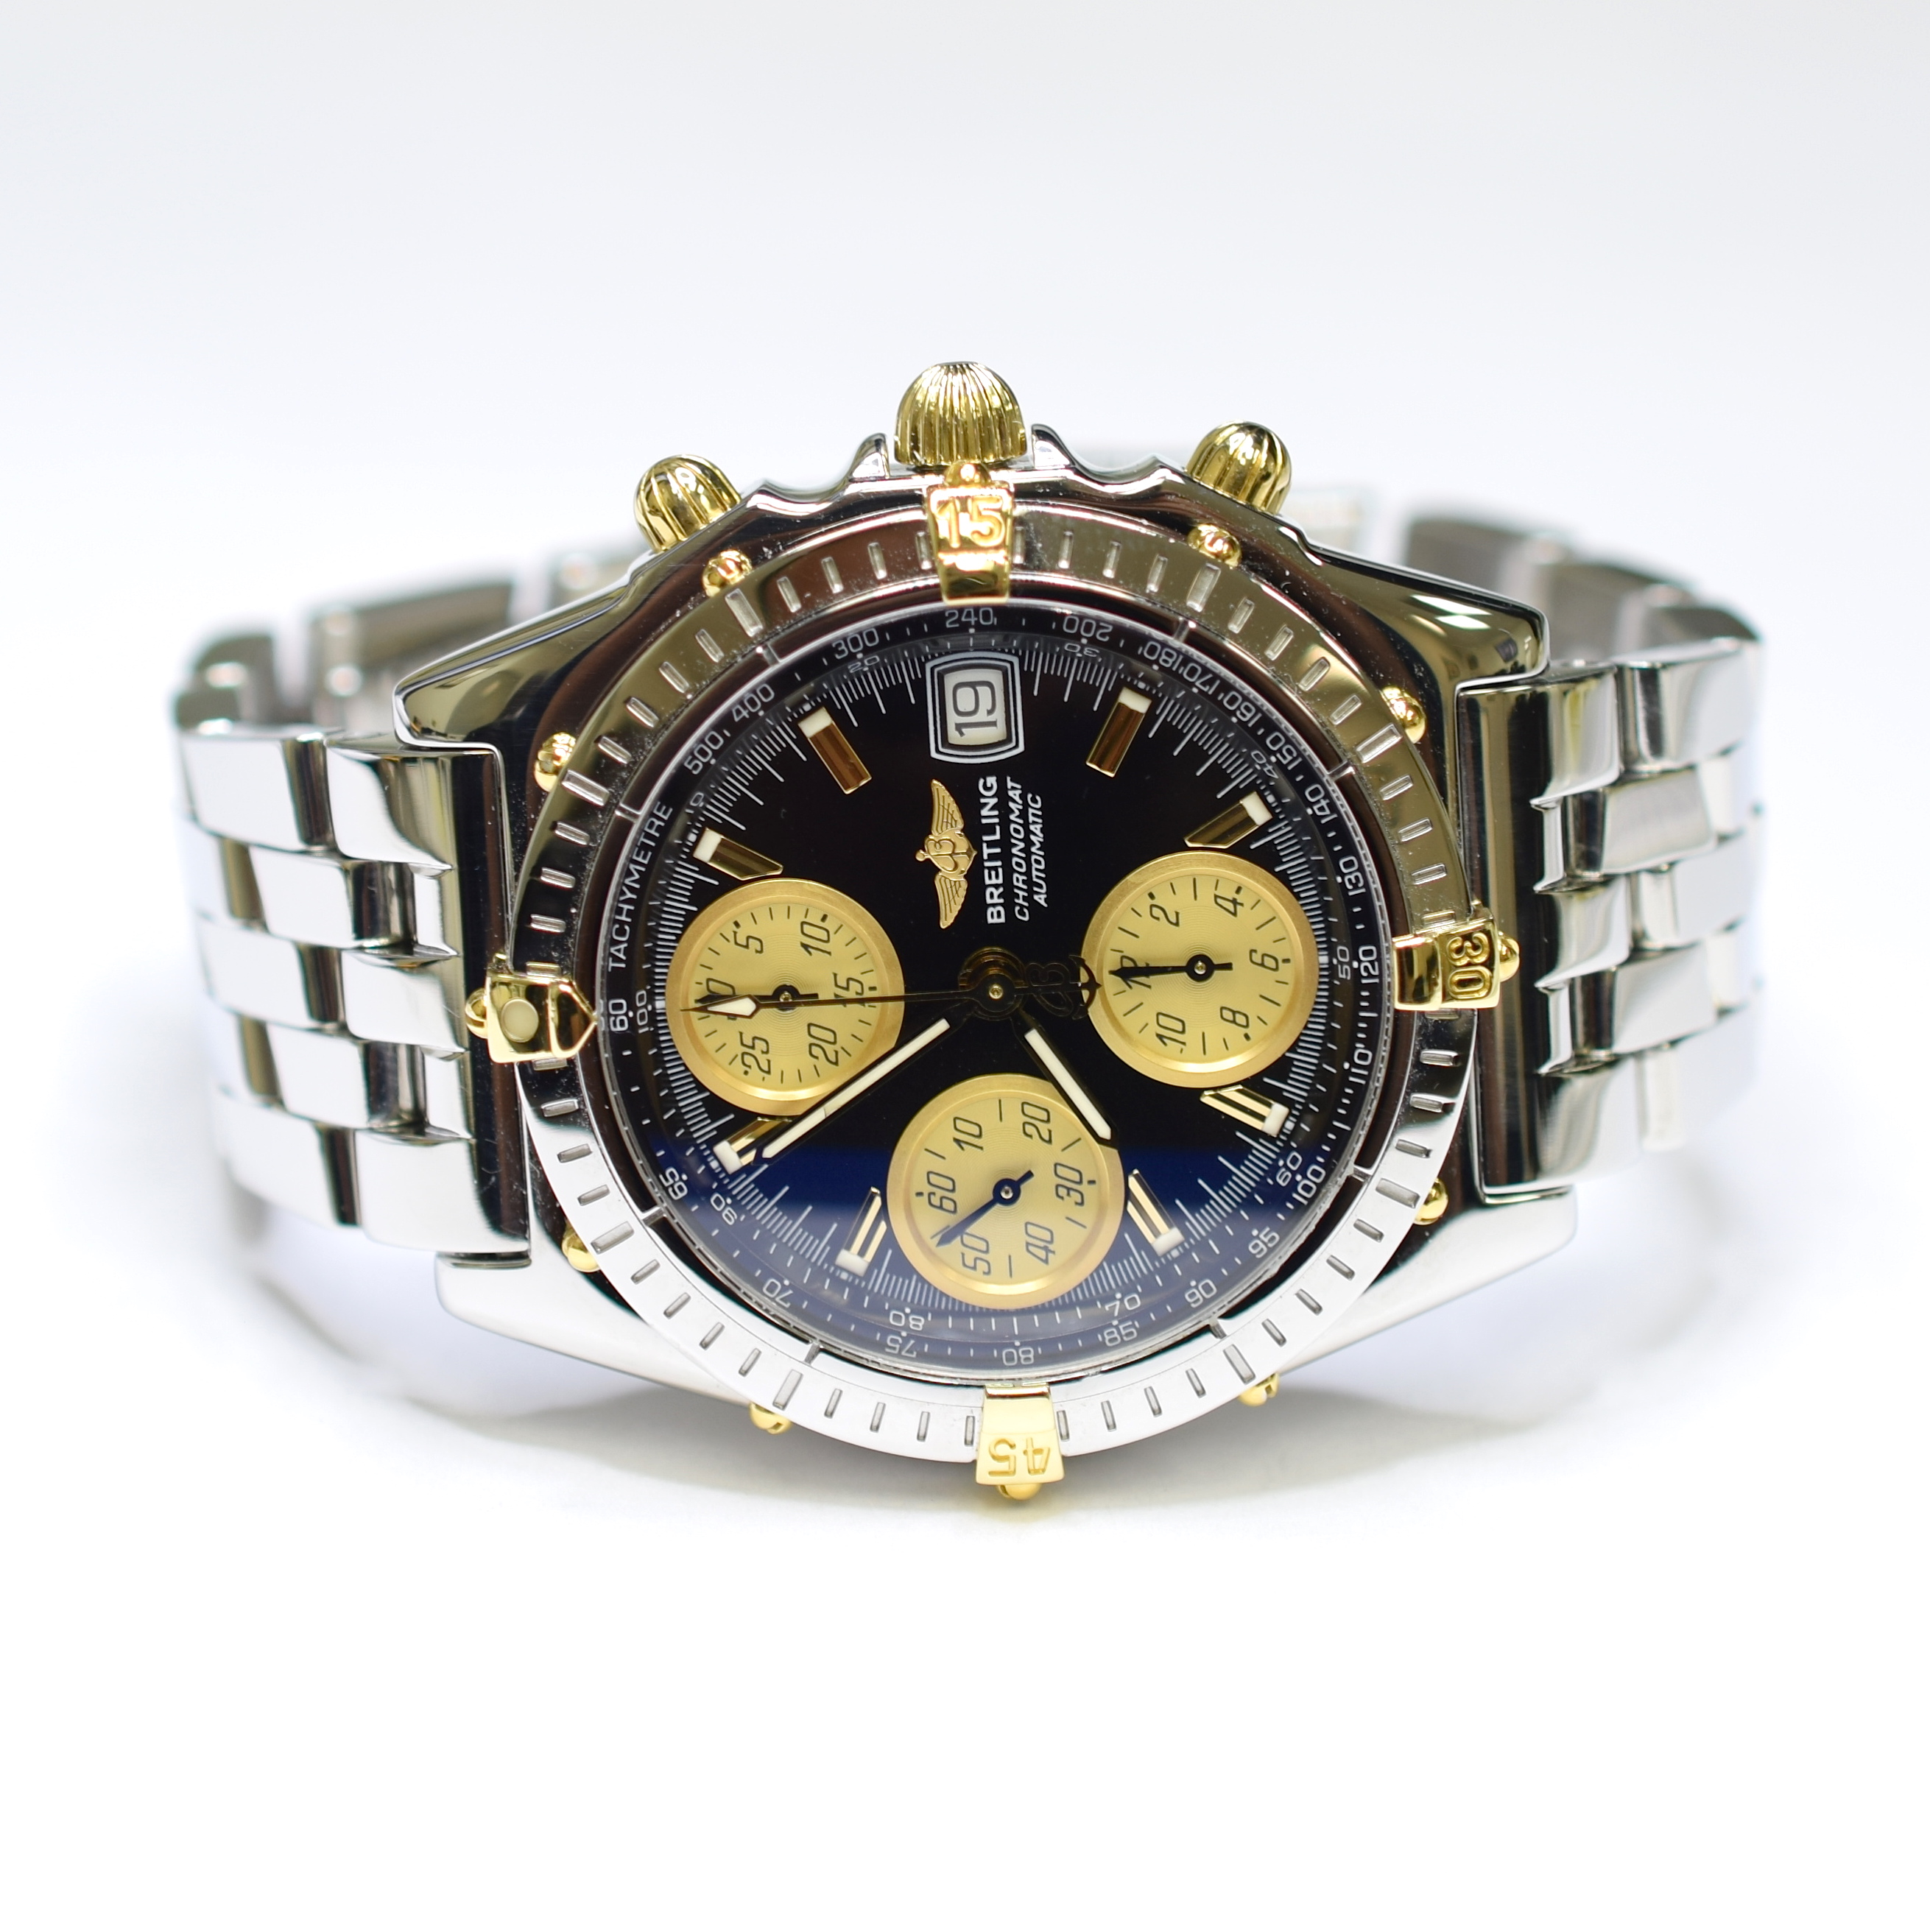 Breitling Chronomat Chronograph 40mm Stainless Steel And 18k Gold